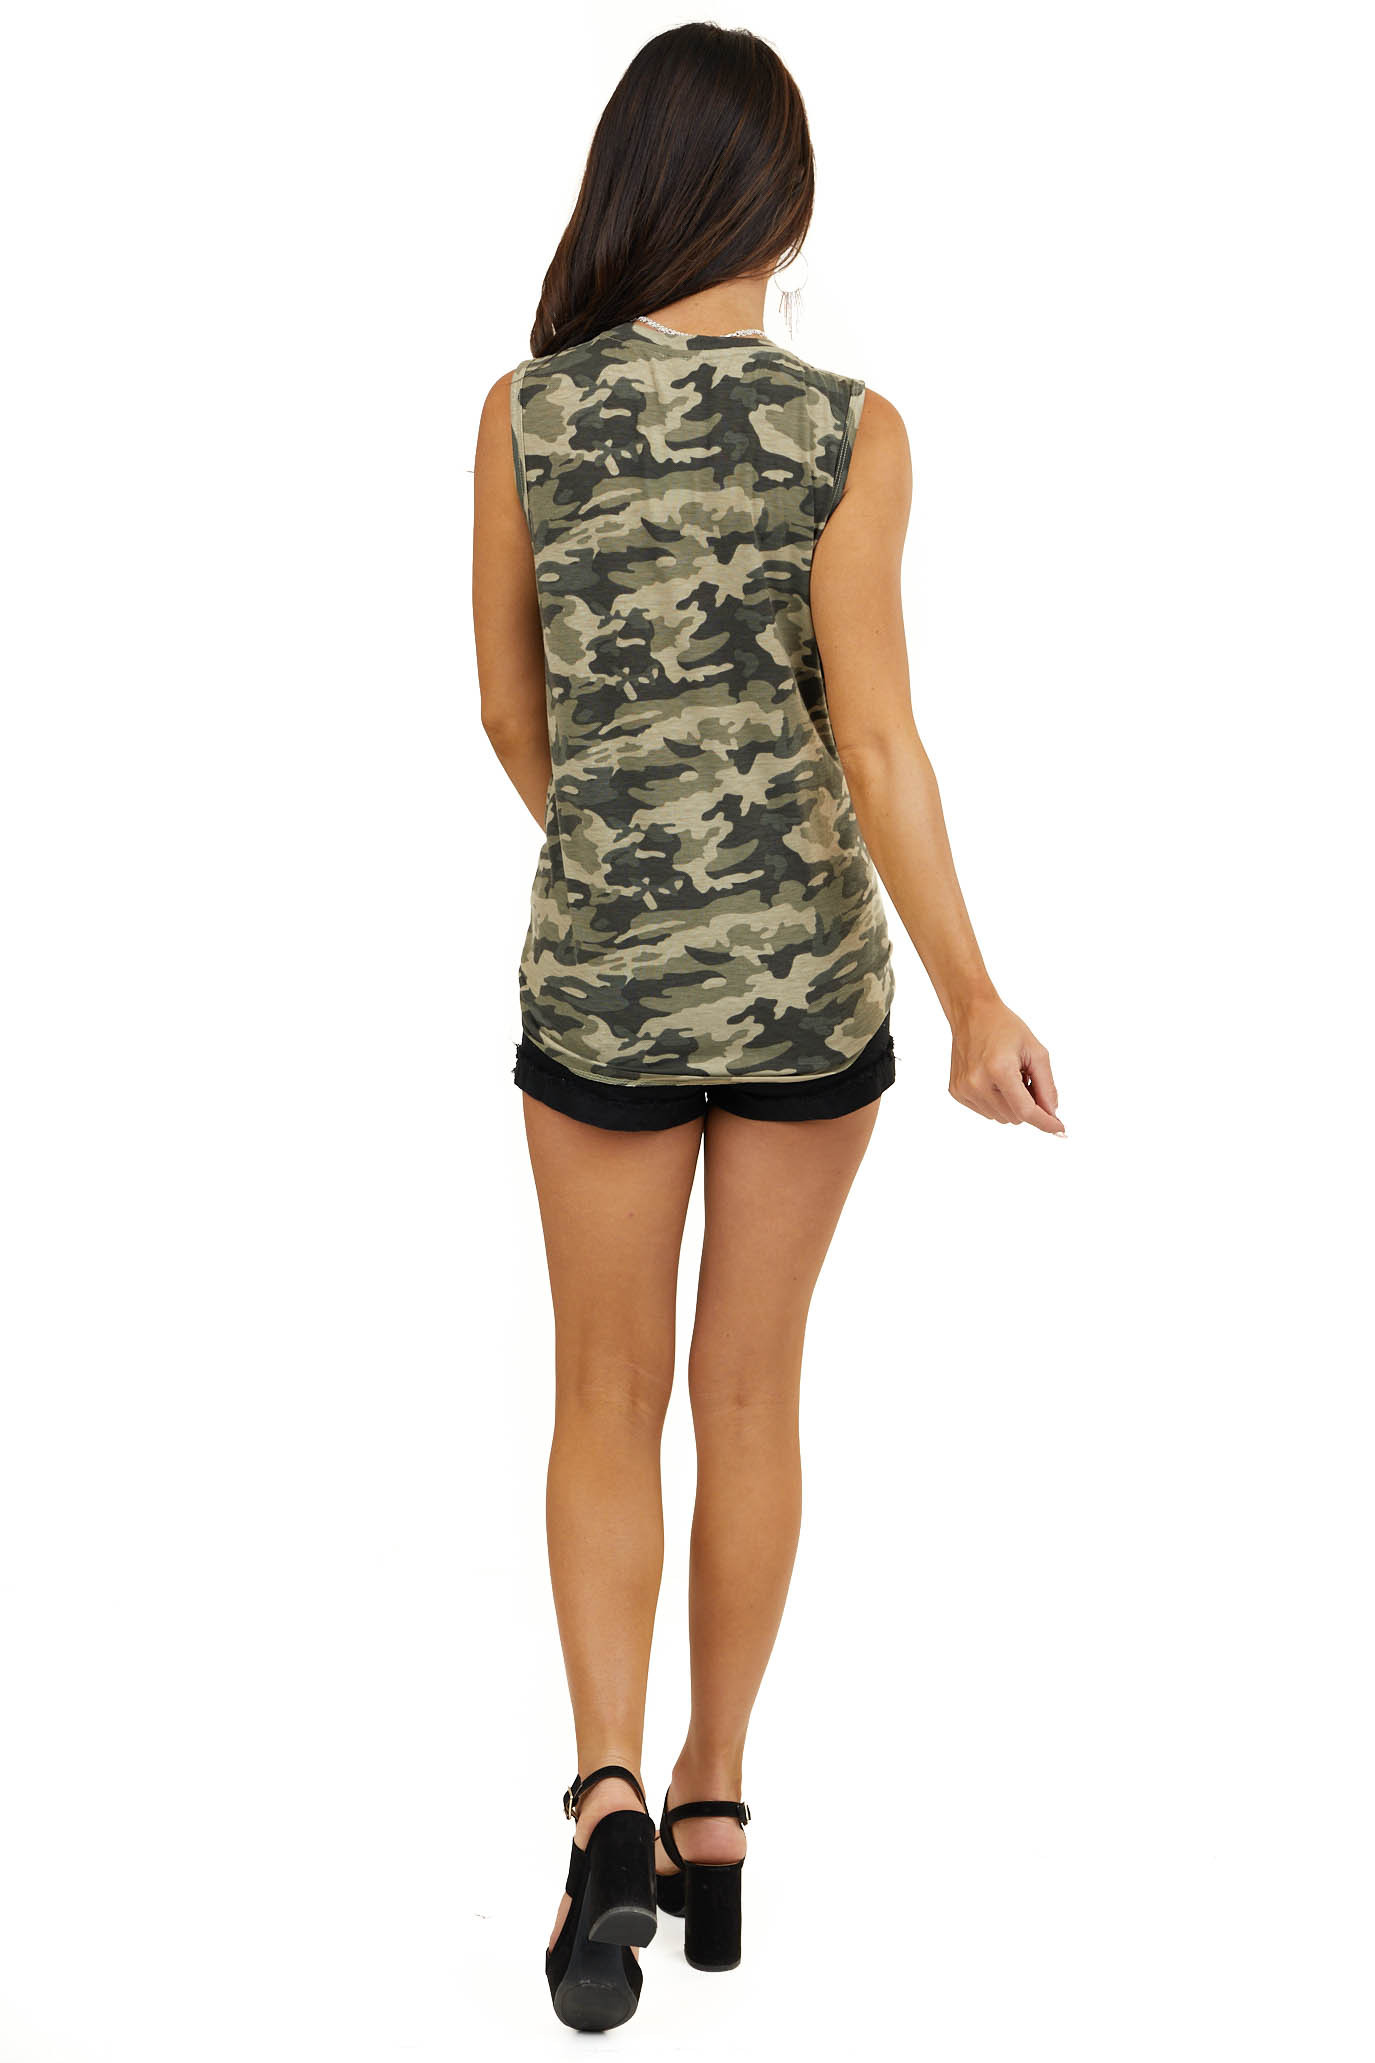 Olive Camo Print Sleeveless Knit Top with Front Tie Detail